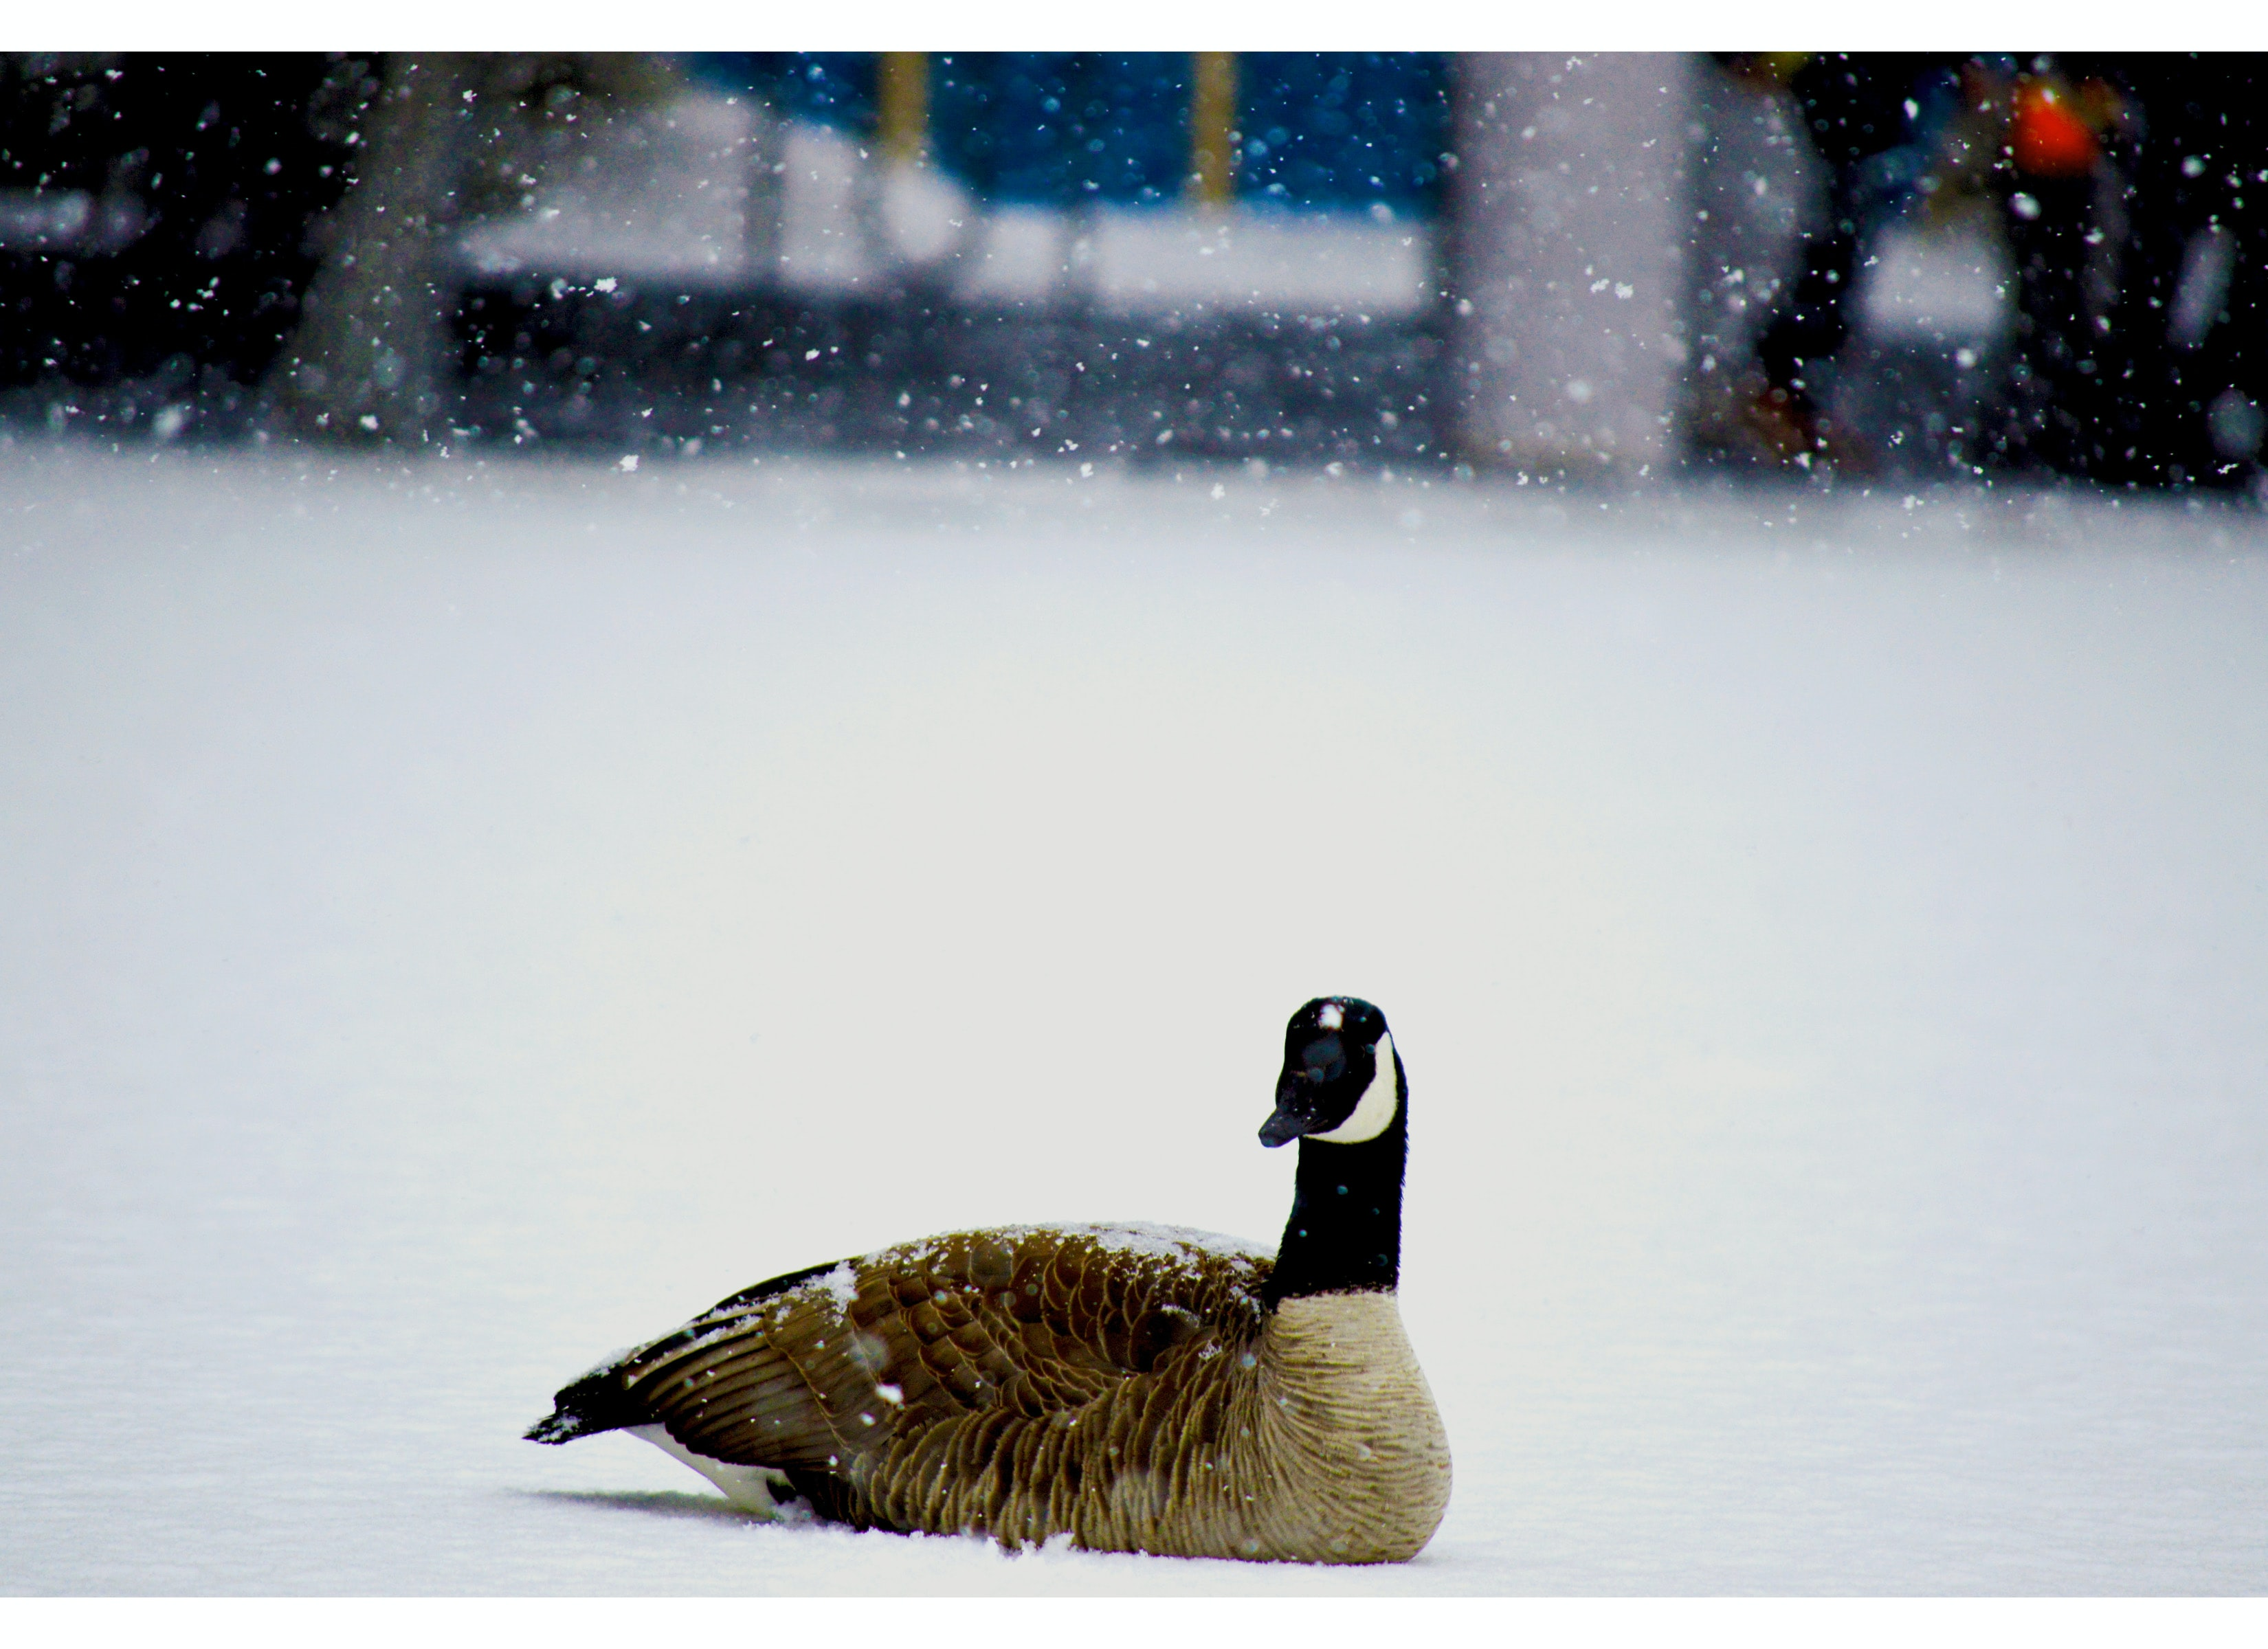 Canadian goose on snow covered ground